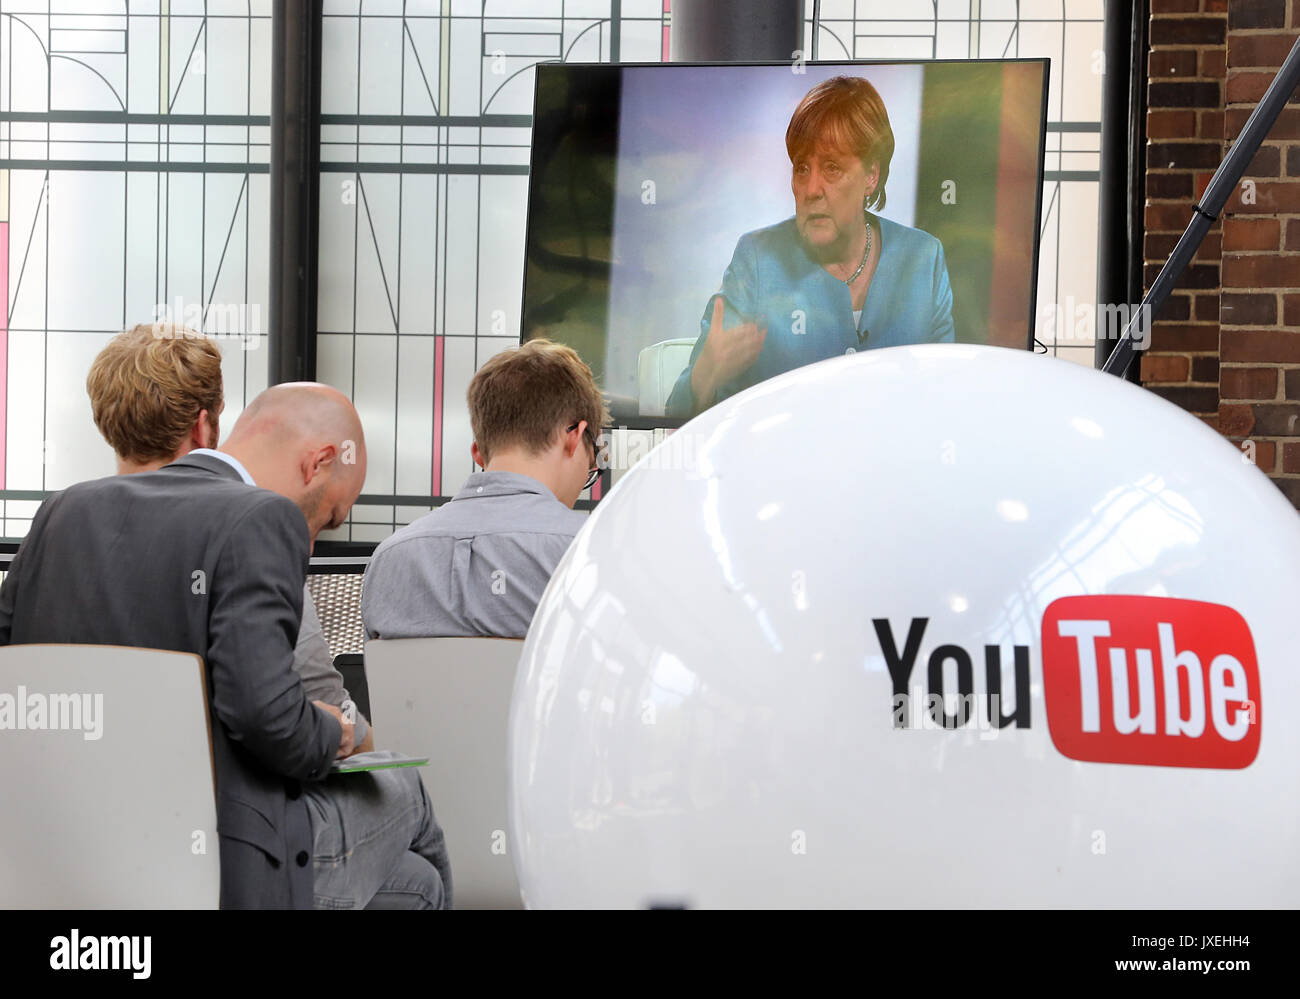 Berlin, Germany. 16th Aug, 2017. People watch from an adjoining room as German Chancellor Angela Merkel is interviewed by Youtubers and the online community in a livestream in Berlin, Germany, 16 August 2017. Photo: Wolfgang Kumm/dpa/Alamy Live News - Stock Image